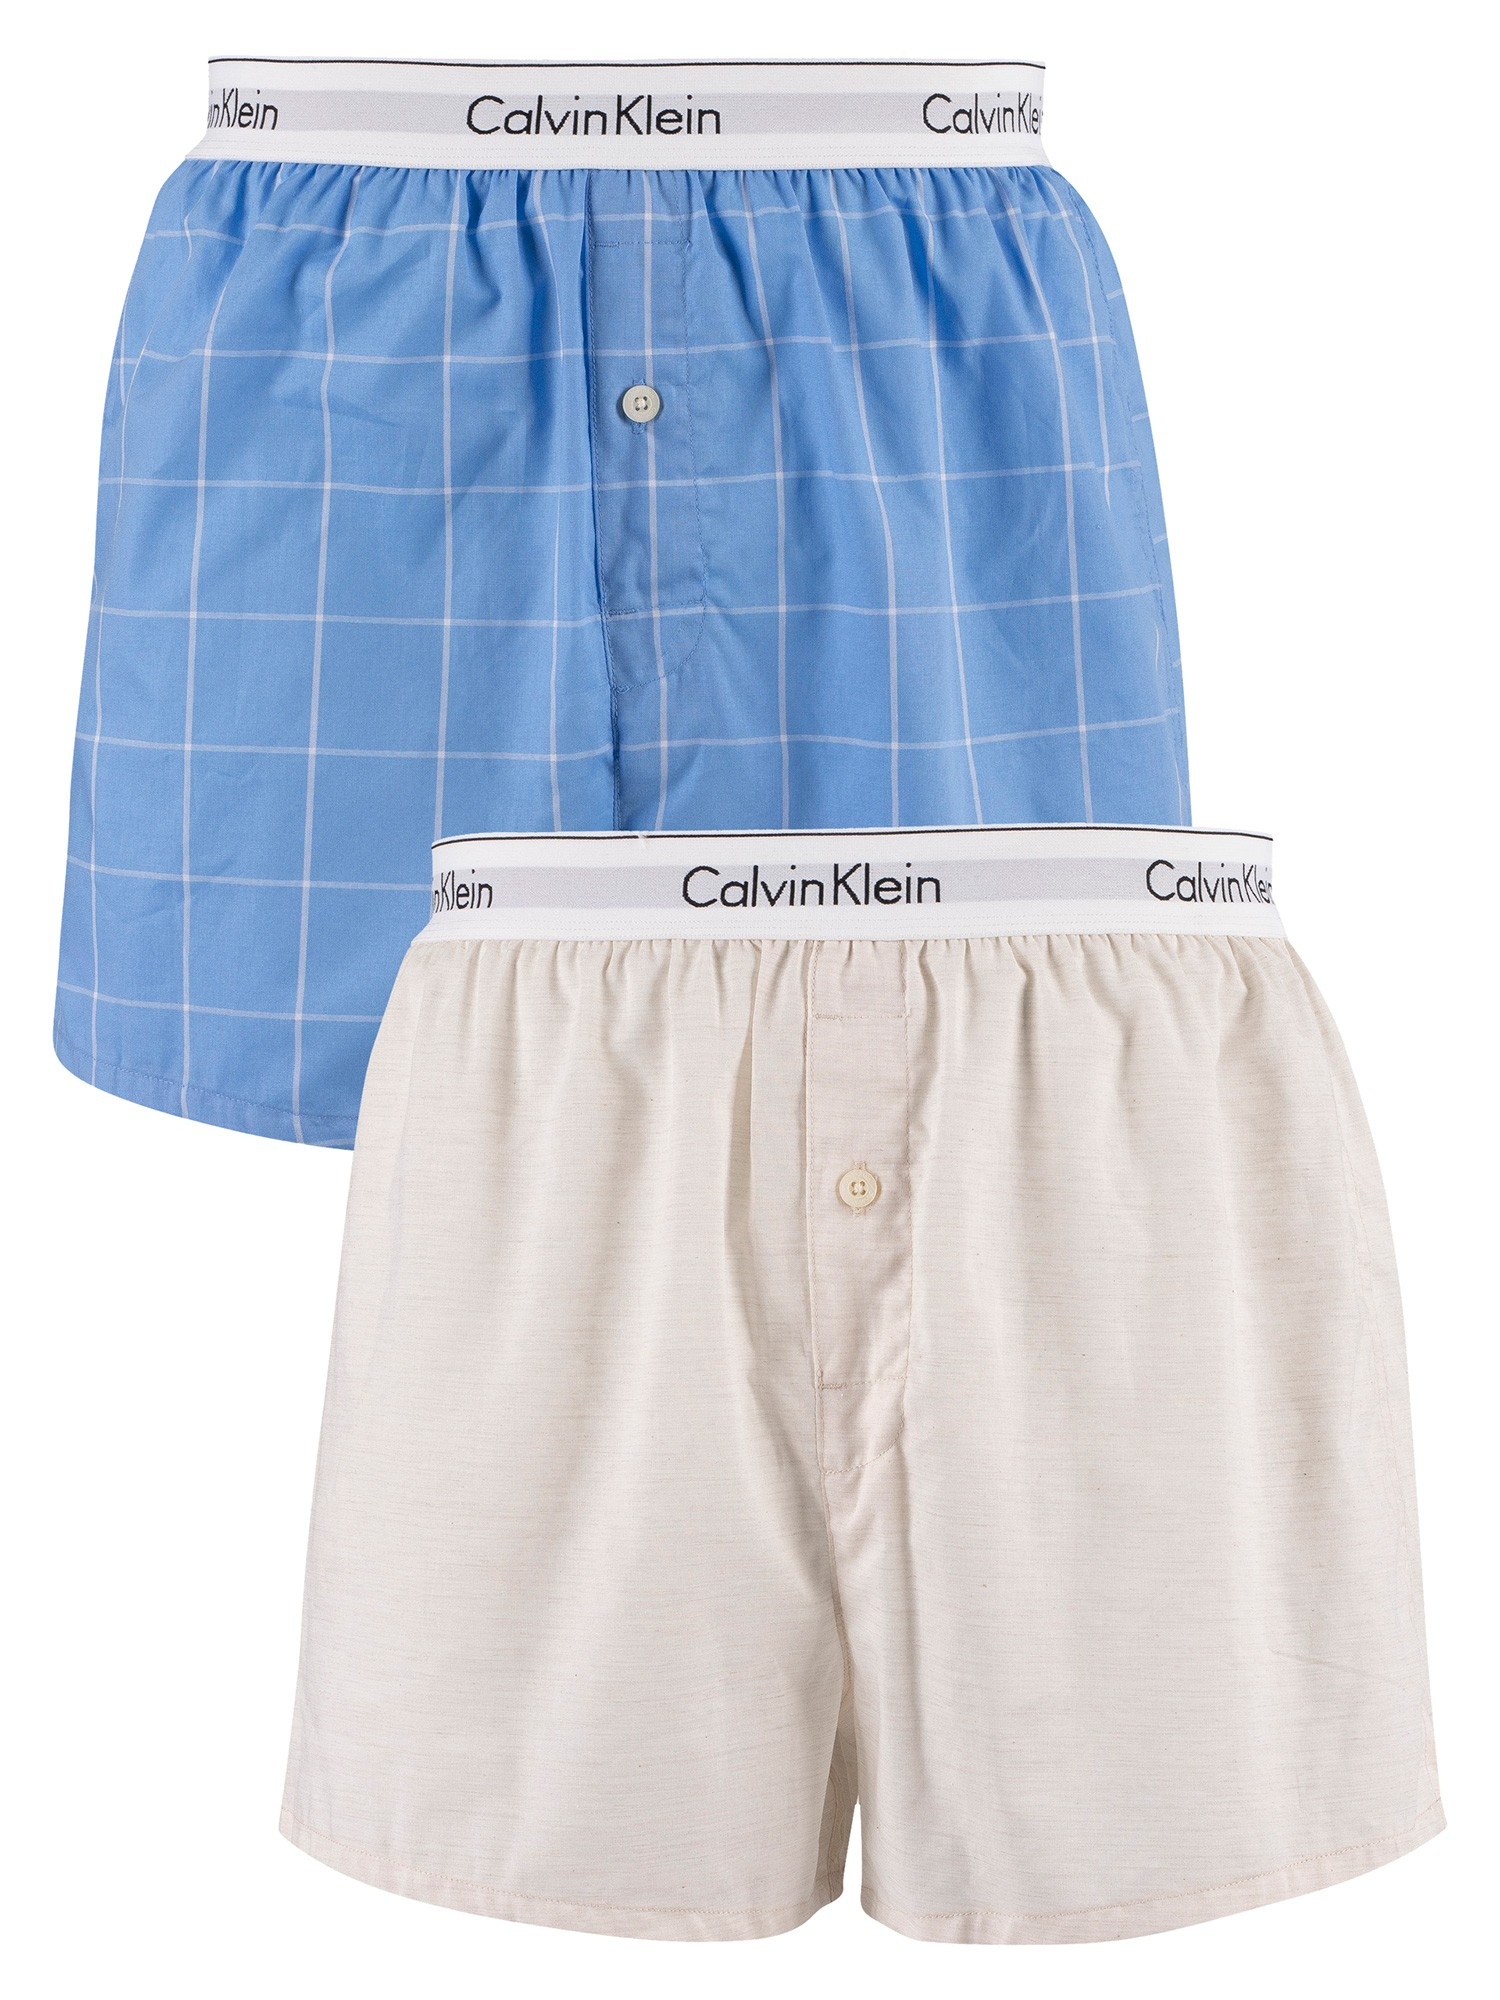 Calvin Klein 2 Slim Fit Woven Boxers - Oatmeal Heather / Modern Window